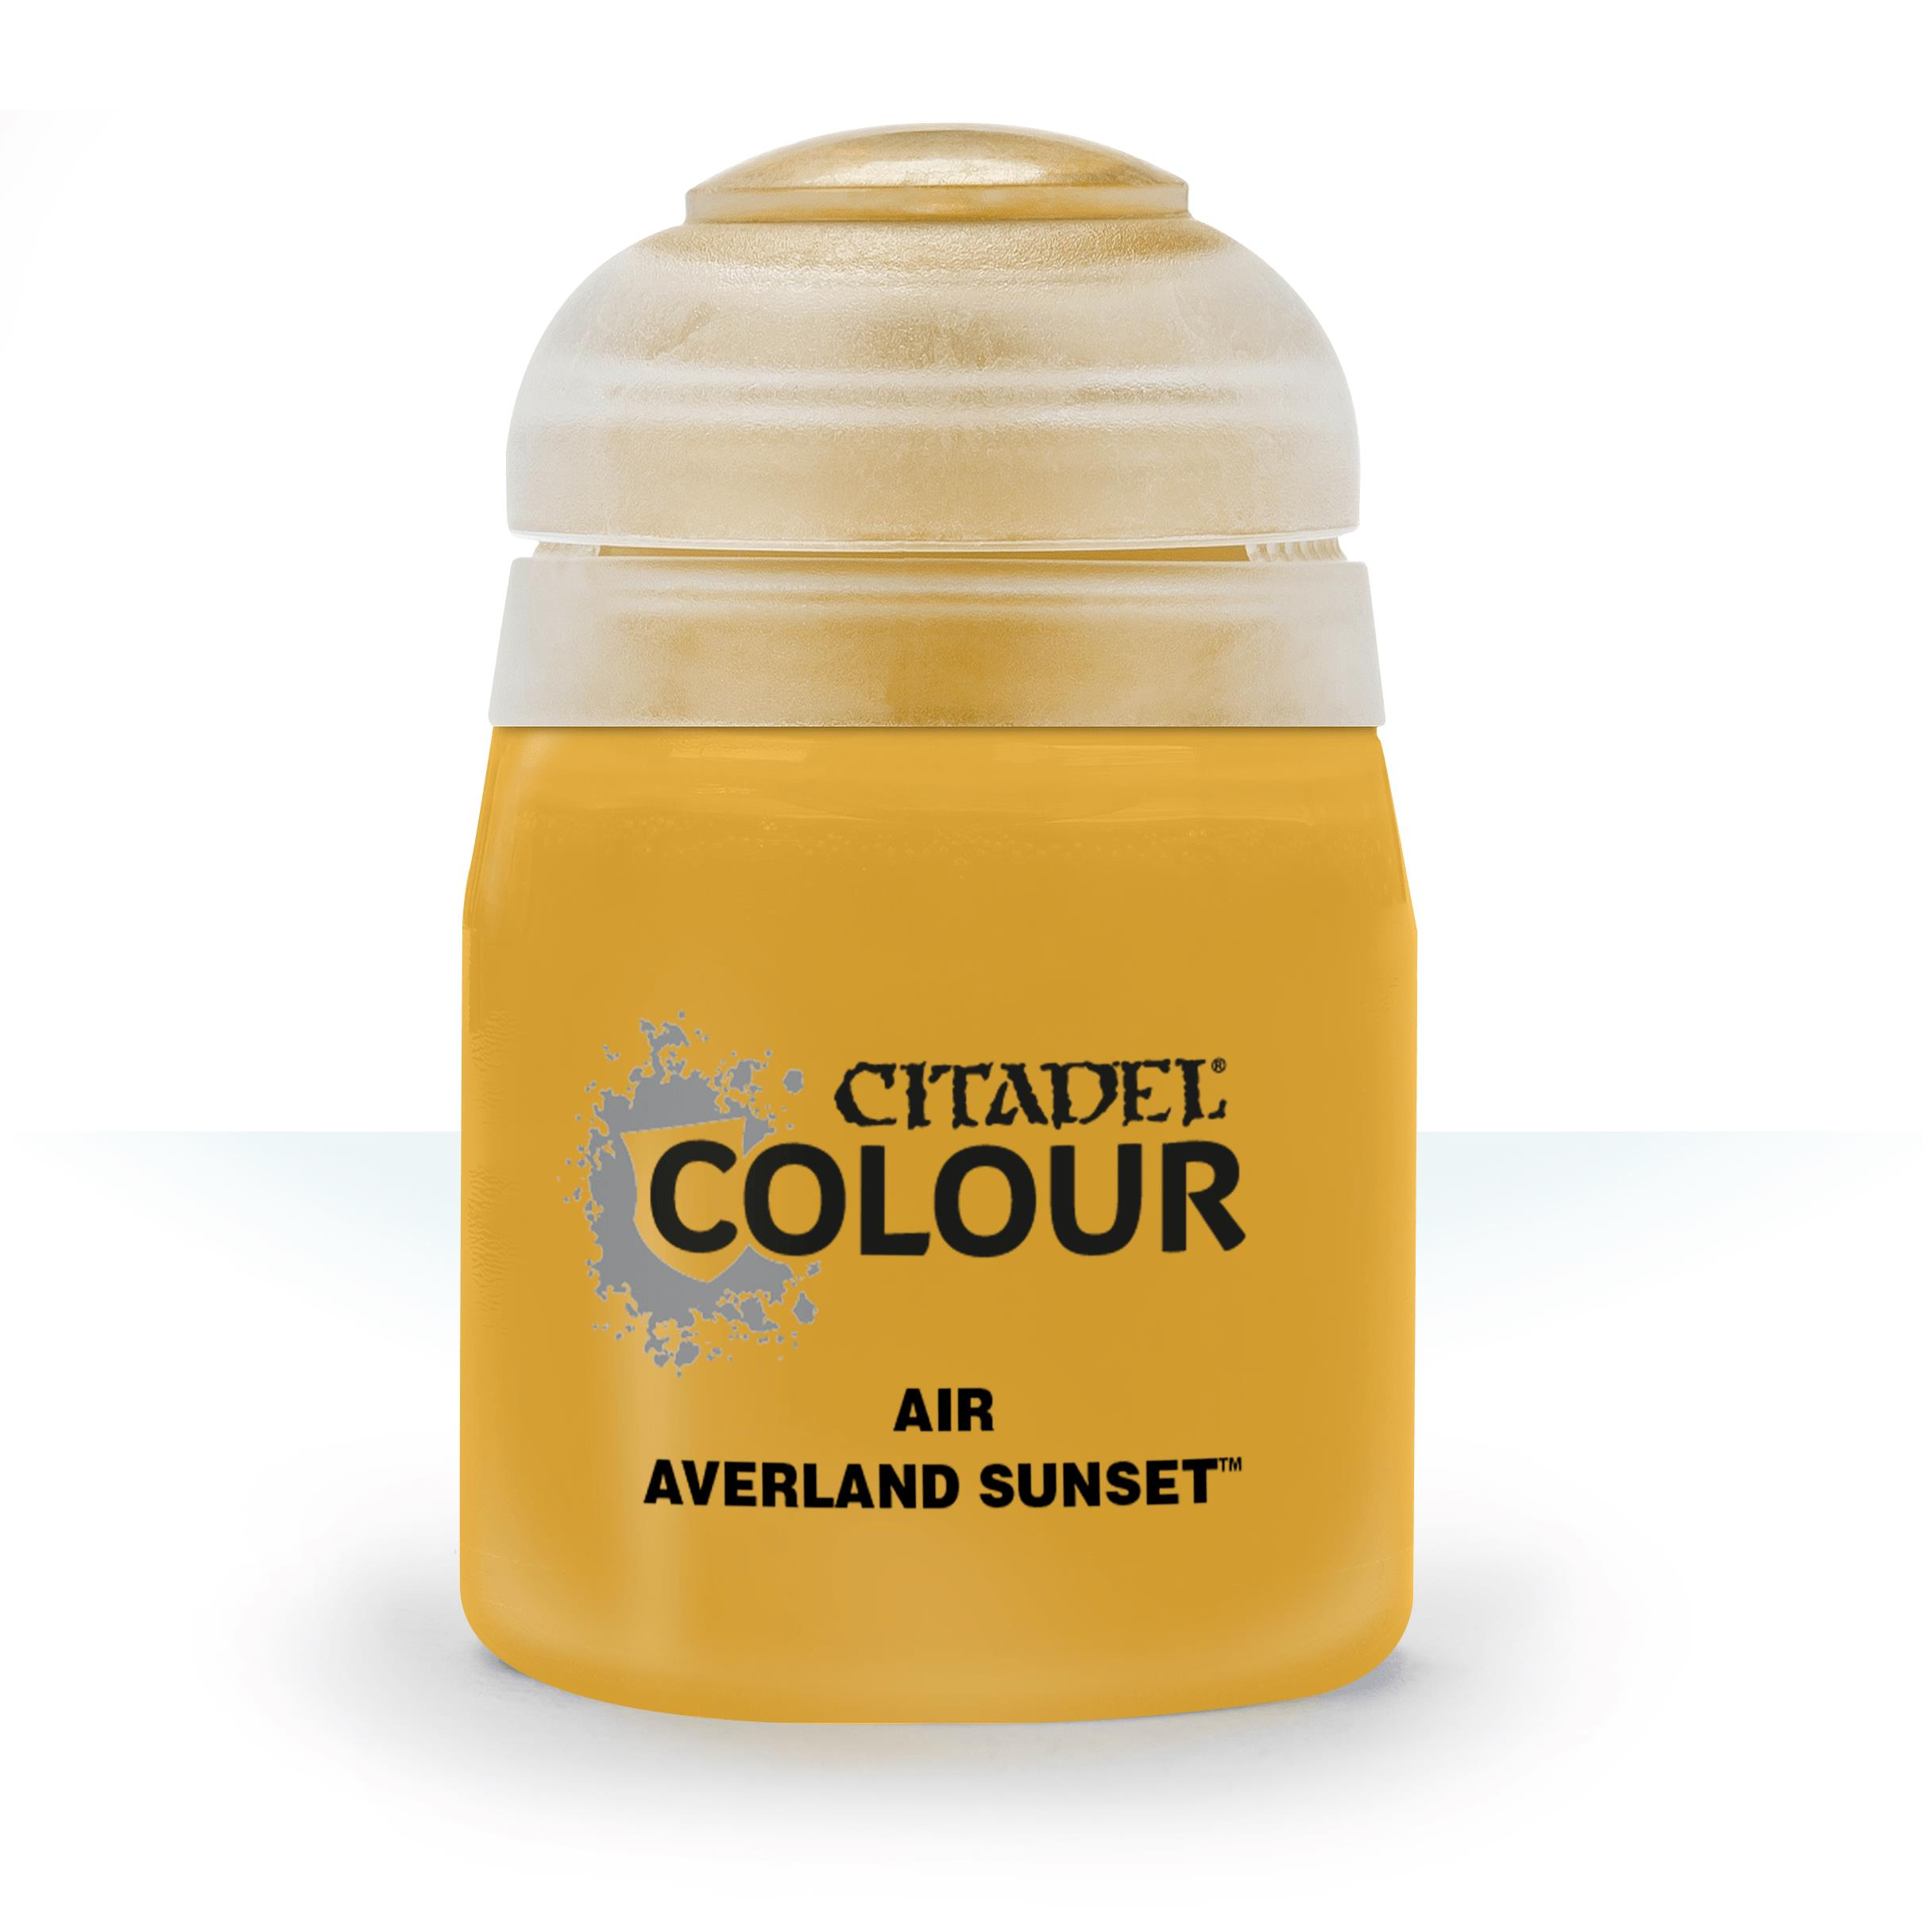 Air: Averland Sunset